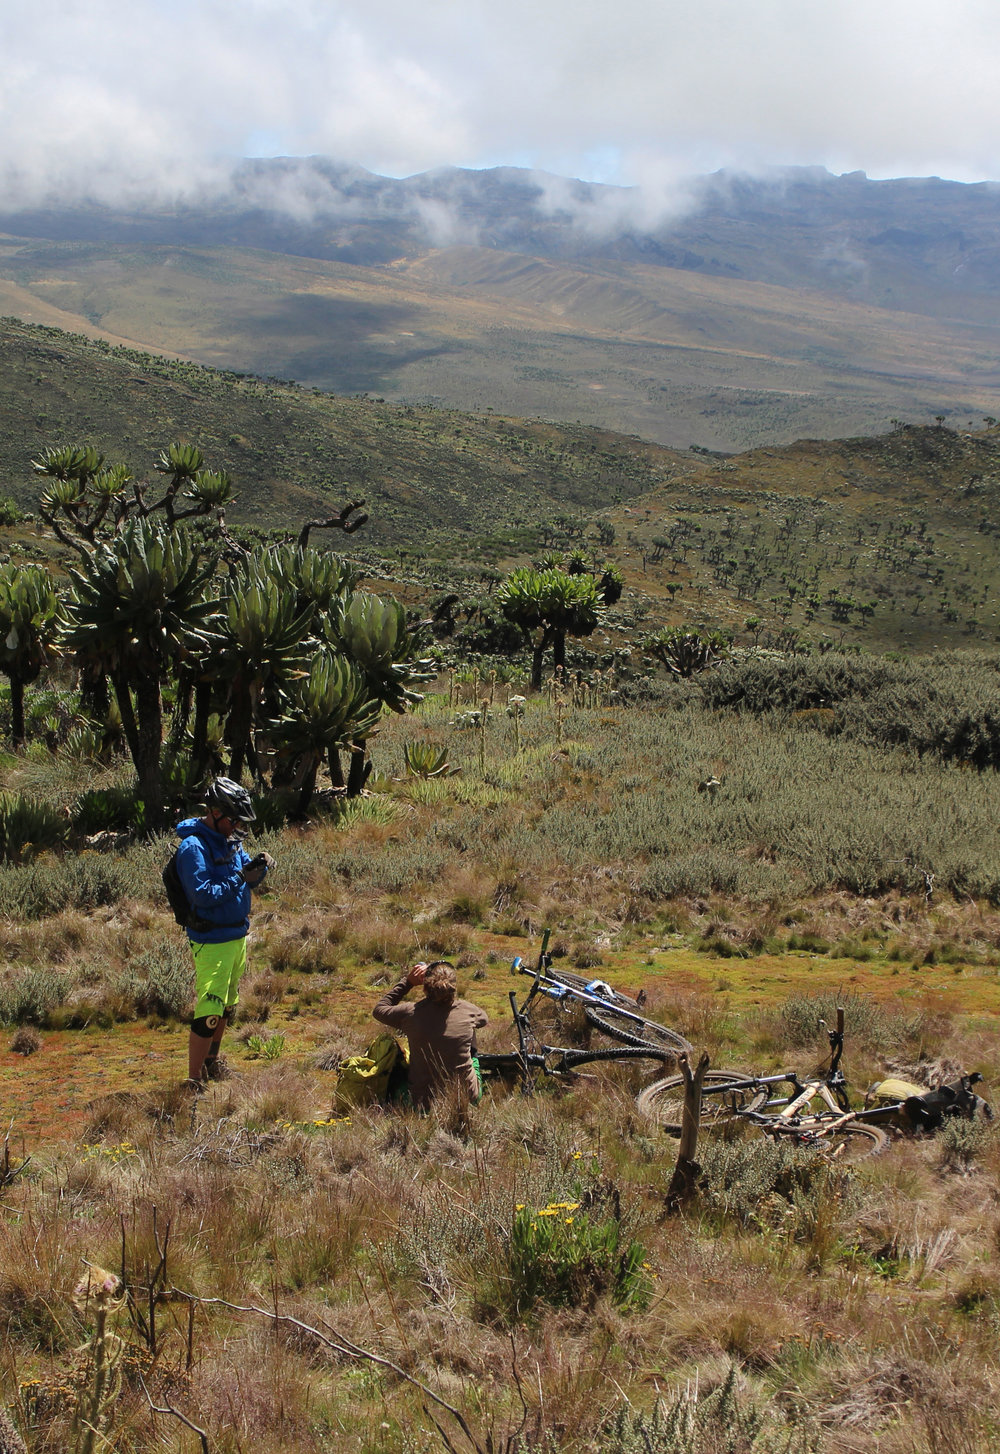 Mt. Elgon MTB expedition. - Clark Expeditions has pioneered MTB expeditions on Mt. Elgon. Having tested many different route options we now have the knowledge to take anyone with a decent level of fitness and a positive attitude to the top and back with a bike! There are different routes and many different levels of technicality, from fast downhill descents to long gentle journeys across the mountain.Whichever way we tackle the mountain you are sure to fall in love with its beauty and charm and go away with lasting memories.Mt. Elgon is 4321m and an extinct volcano.  It is the largest freestanding volcanic base in the world.  It straddles Uganda and Kenya with the highest point - Wagagai being in Uganda.There are 4 main routes up and down the mountain. Sasa, Sipi, Piswa and Suam trails.  Sasa and Sipi are the most popular for hikers. The Sasa trail is the most direct route up the mountain so that also works for us on bikes, but the Sipi trail is very up and down and no good to ride. So we have utilised the less often hiked Piswa trail across the mountain.  The two main options on bikes are up and down the Sasa trail - 2 or 3 days - with more advanced riding and long, fast, more technical descents. Then up the Sasa and down the Piswa trail over 4 or 5 days with incredible riding and accessible to intermediate riders. The 4 day trip is physically tough with lots of hiking with your bike as well as riding, its certainly worth the effort though and is a true adventure!